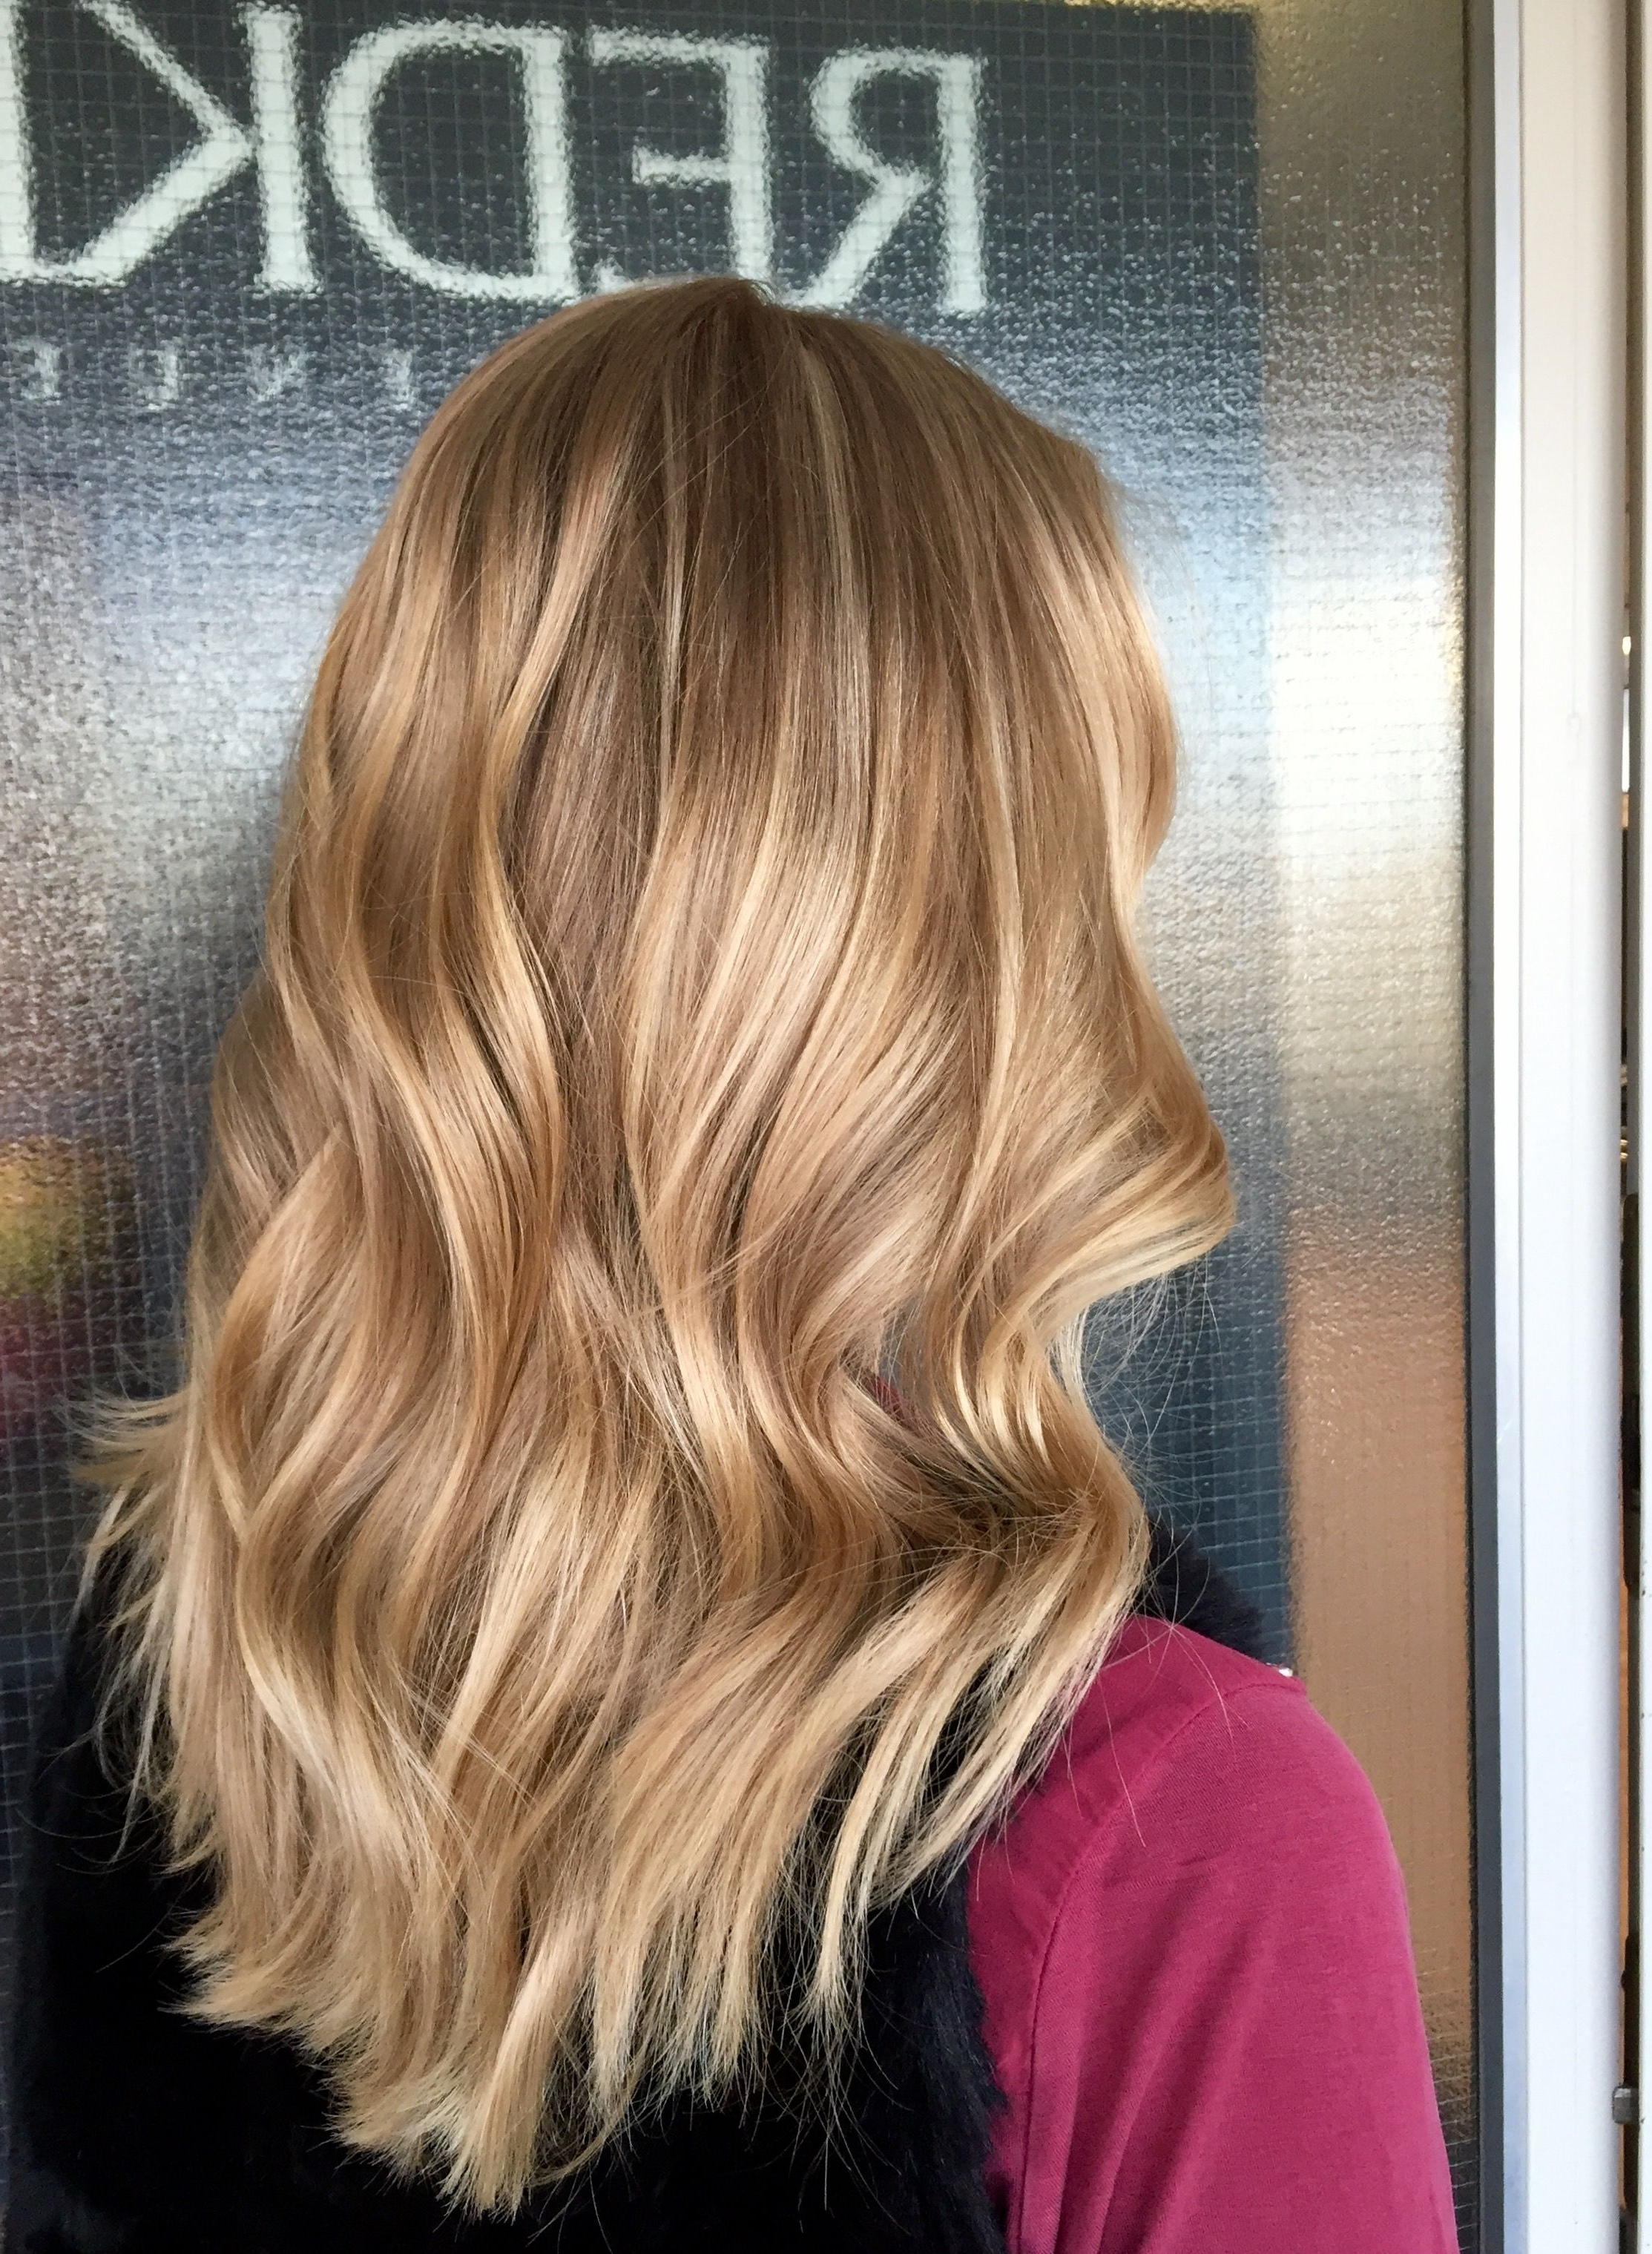 Well Liked Golden Blonde Balayage Hairstyles In Balayaged & Highlighted Caramel Blonde Long Hair #balayage (View 20 of 20)